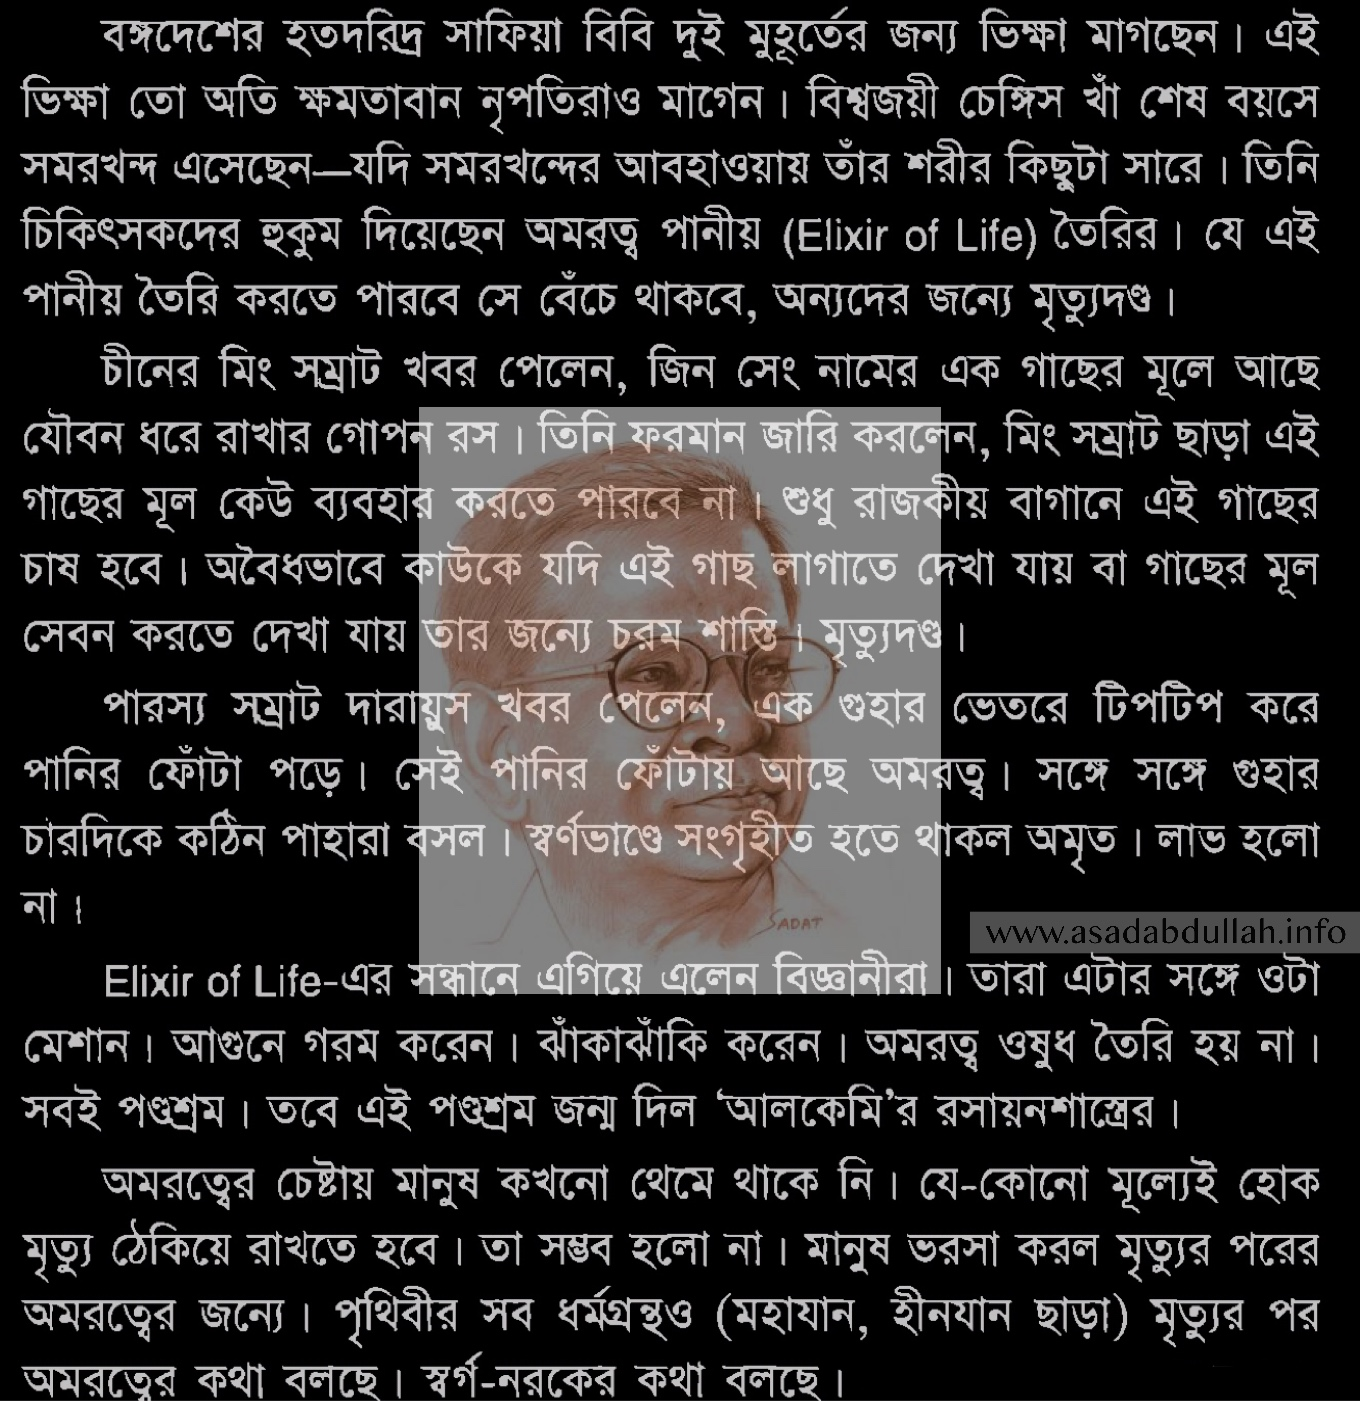 Elixir of life in Humayun Ahmed's writing